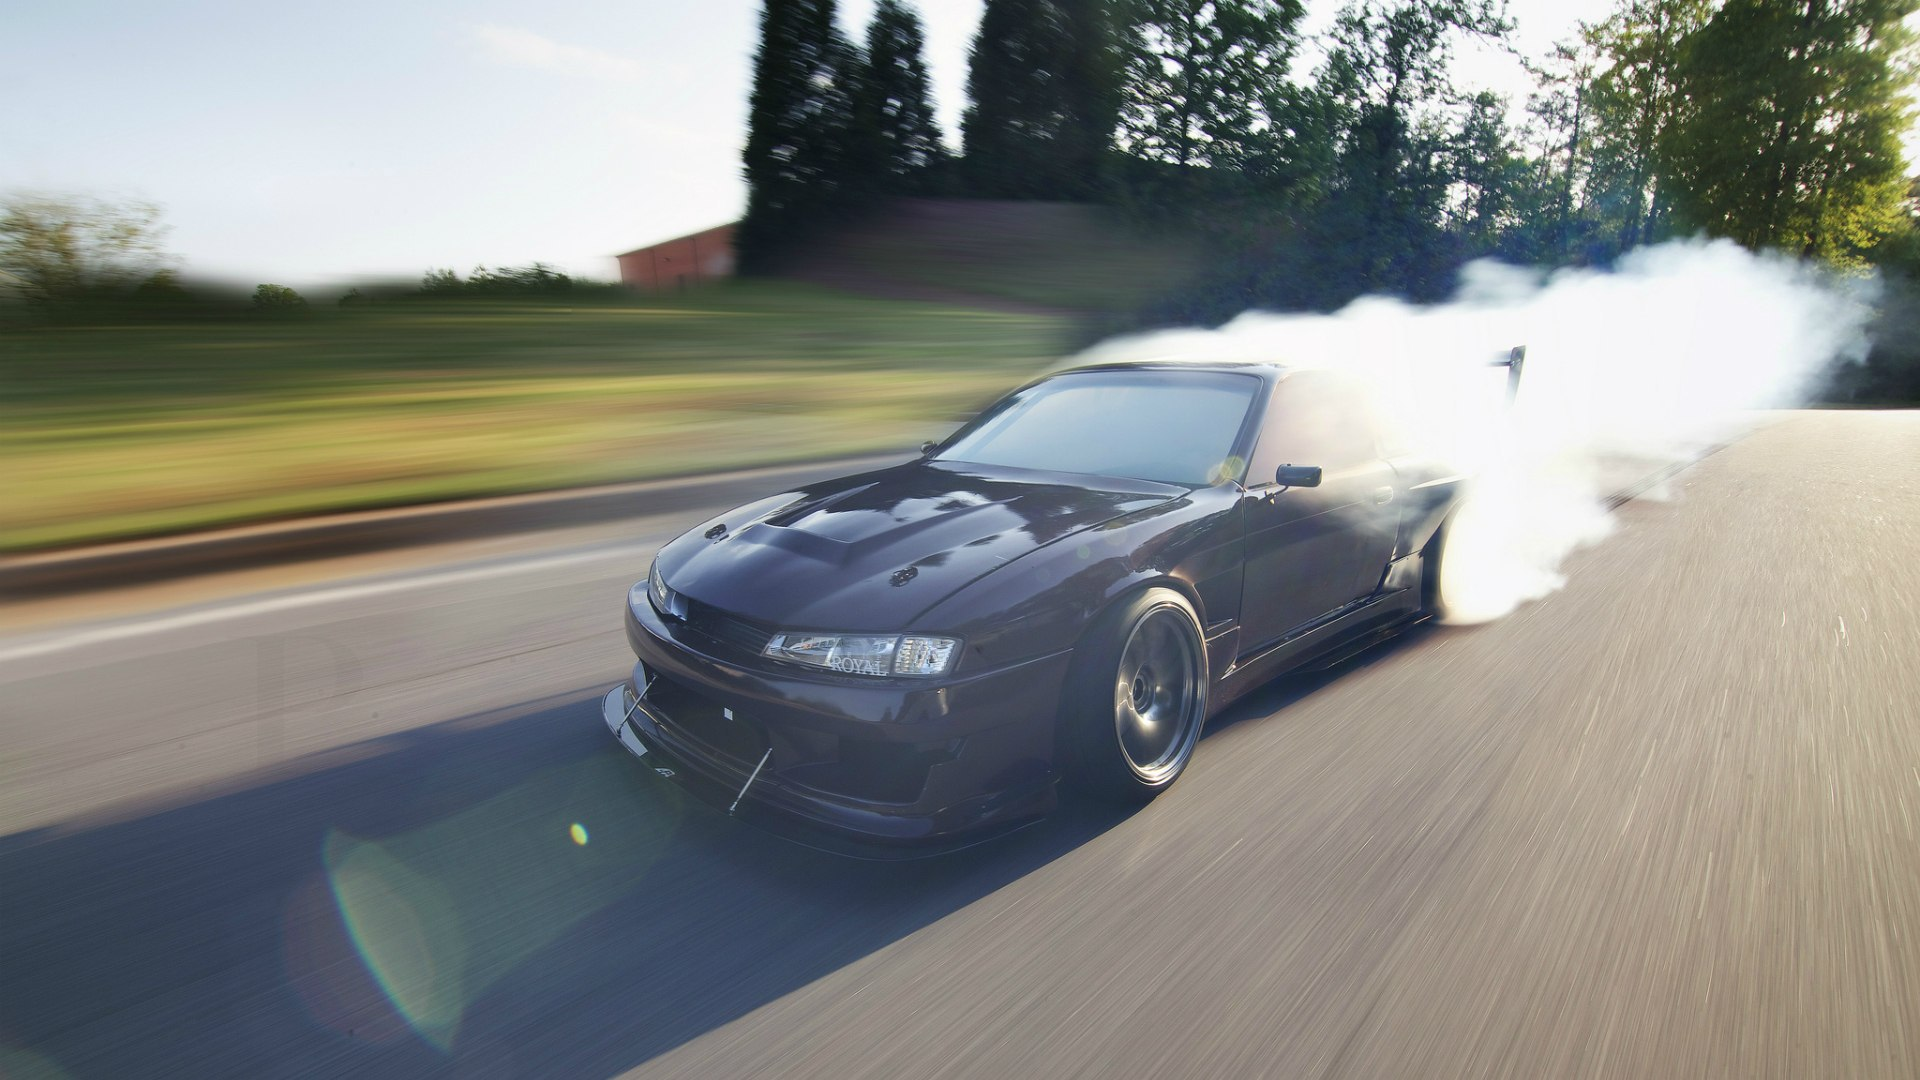 1920x1080 - Nissan Silvia S14 Wallpapers 15